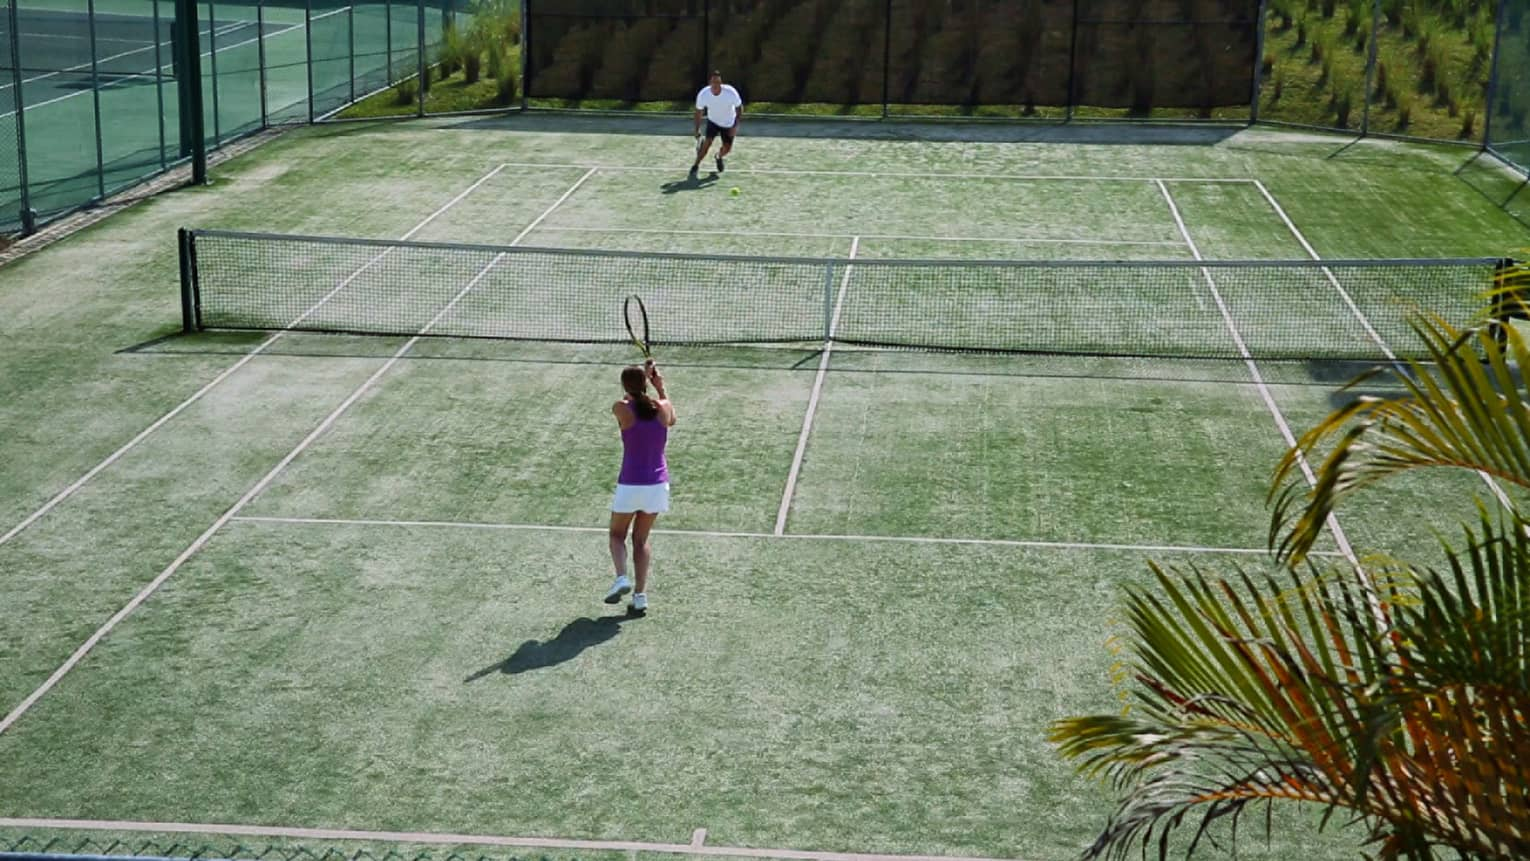 Aerial view of woman with tennis racket serving ball over net to man on court